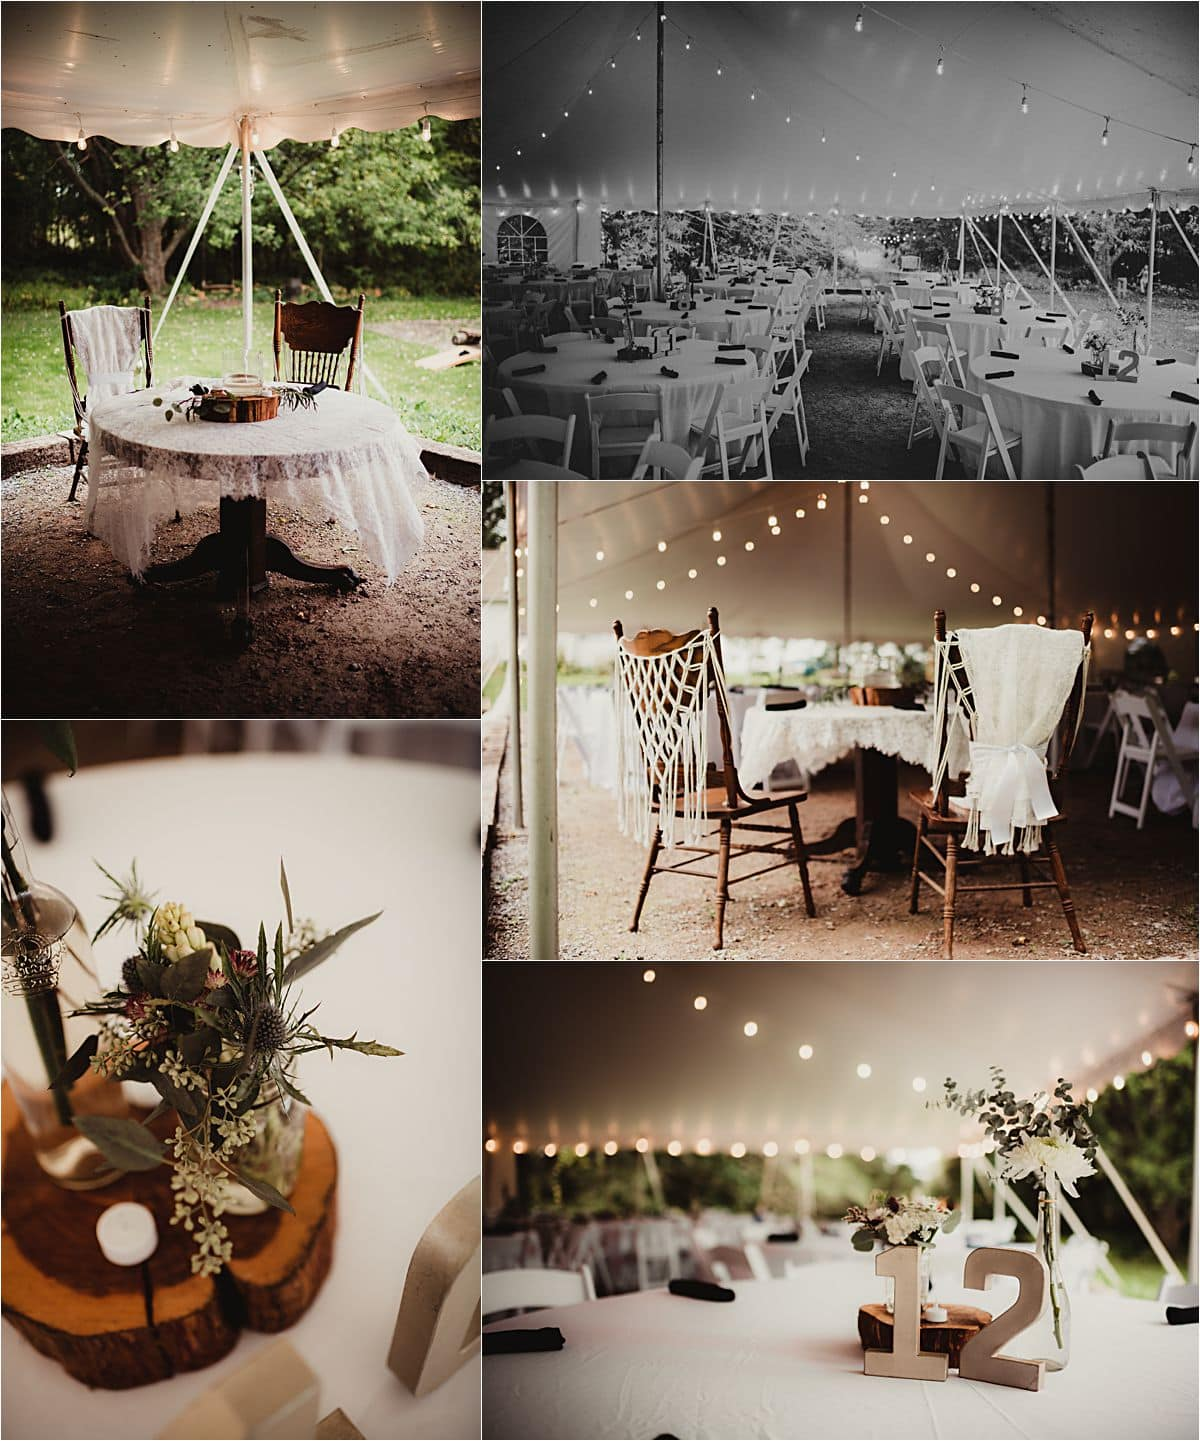 Romantic Rustic Wedding Reception Table Details